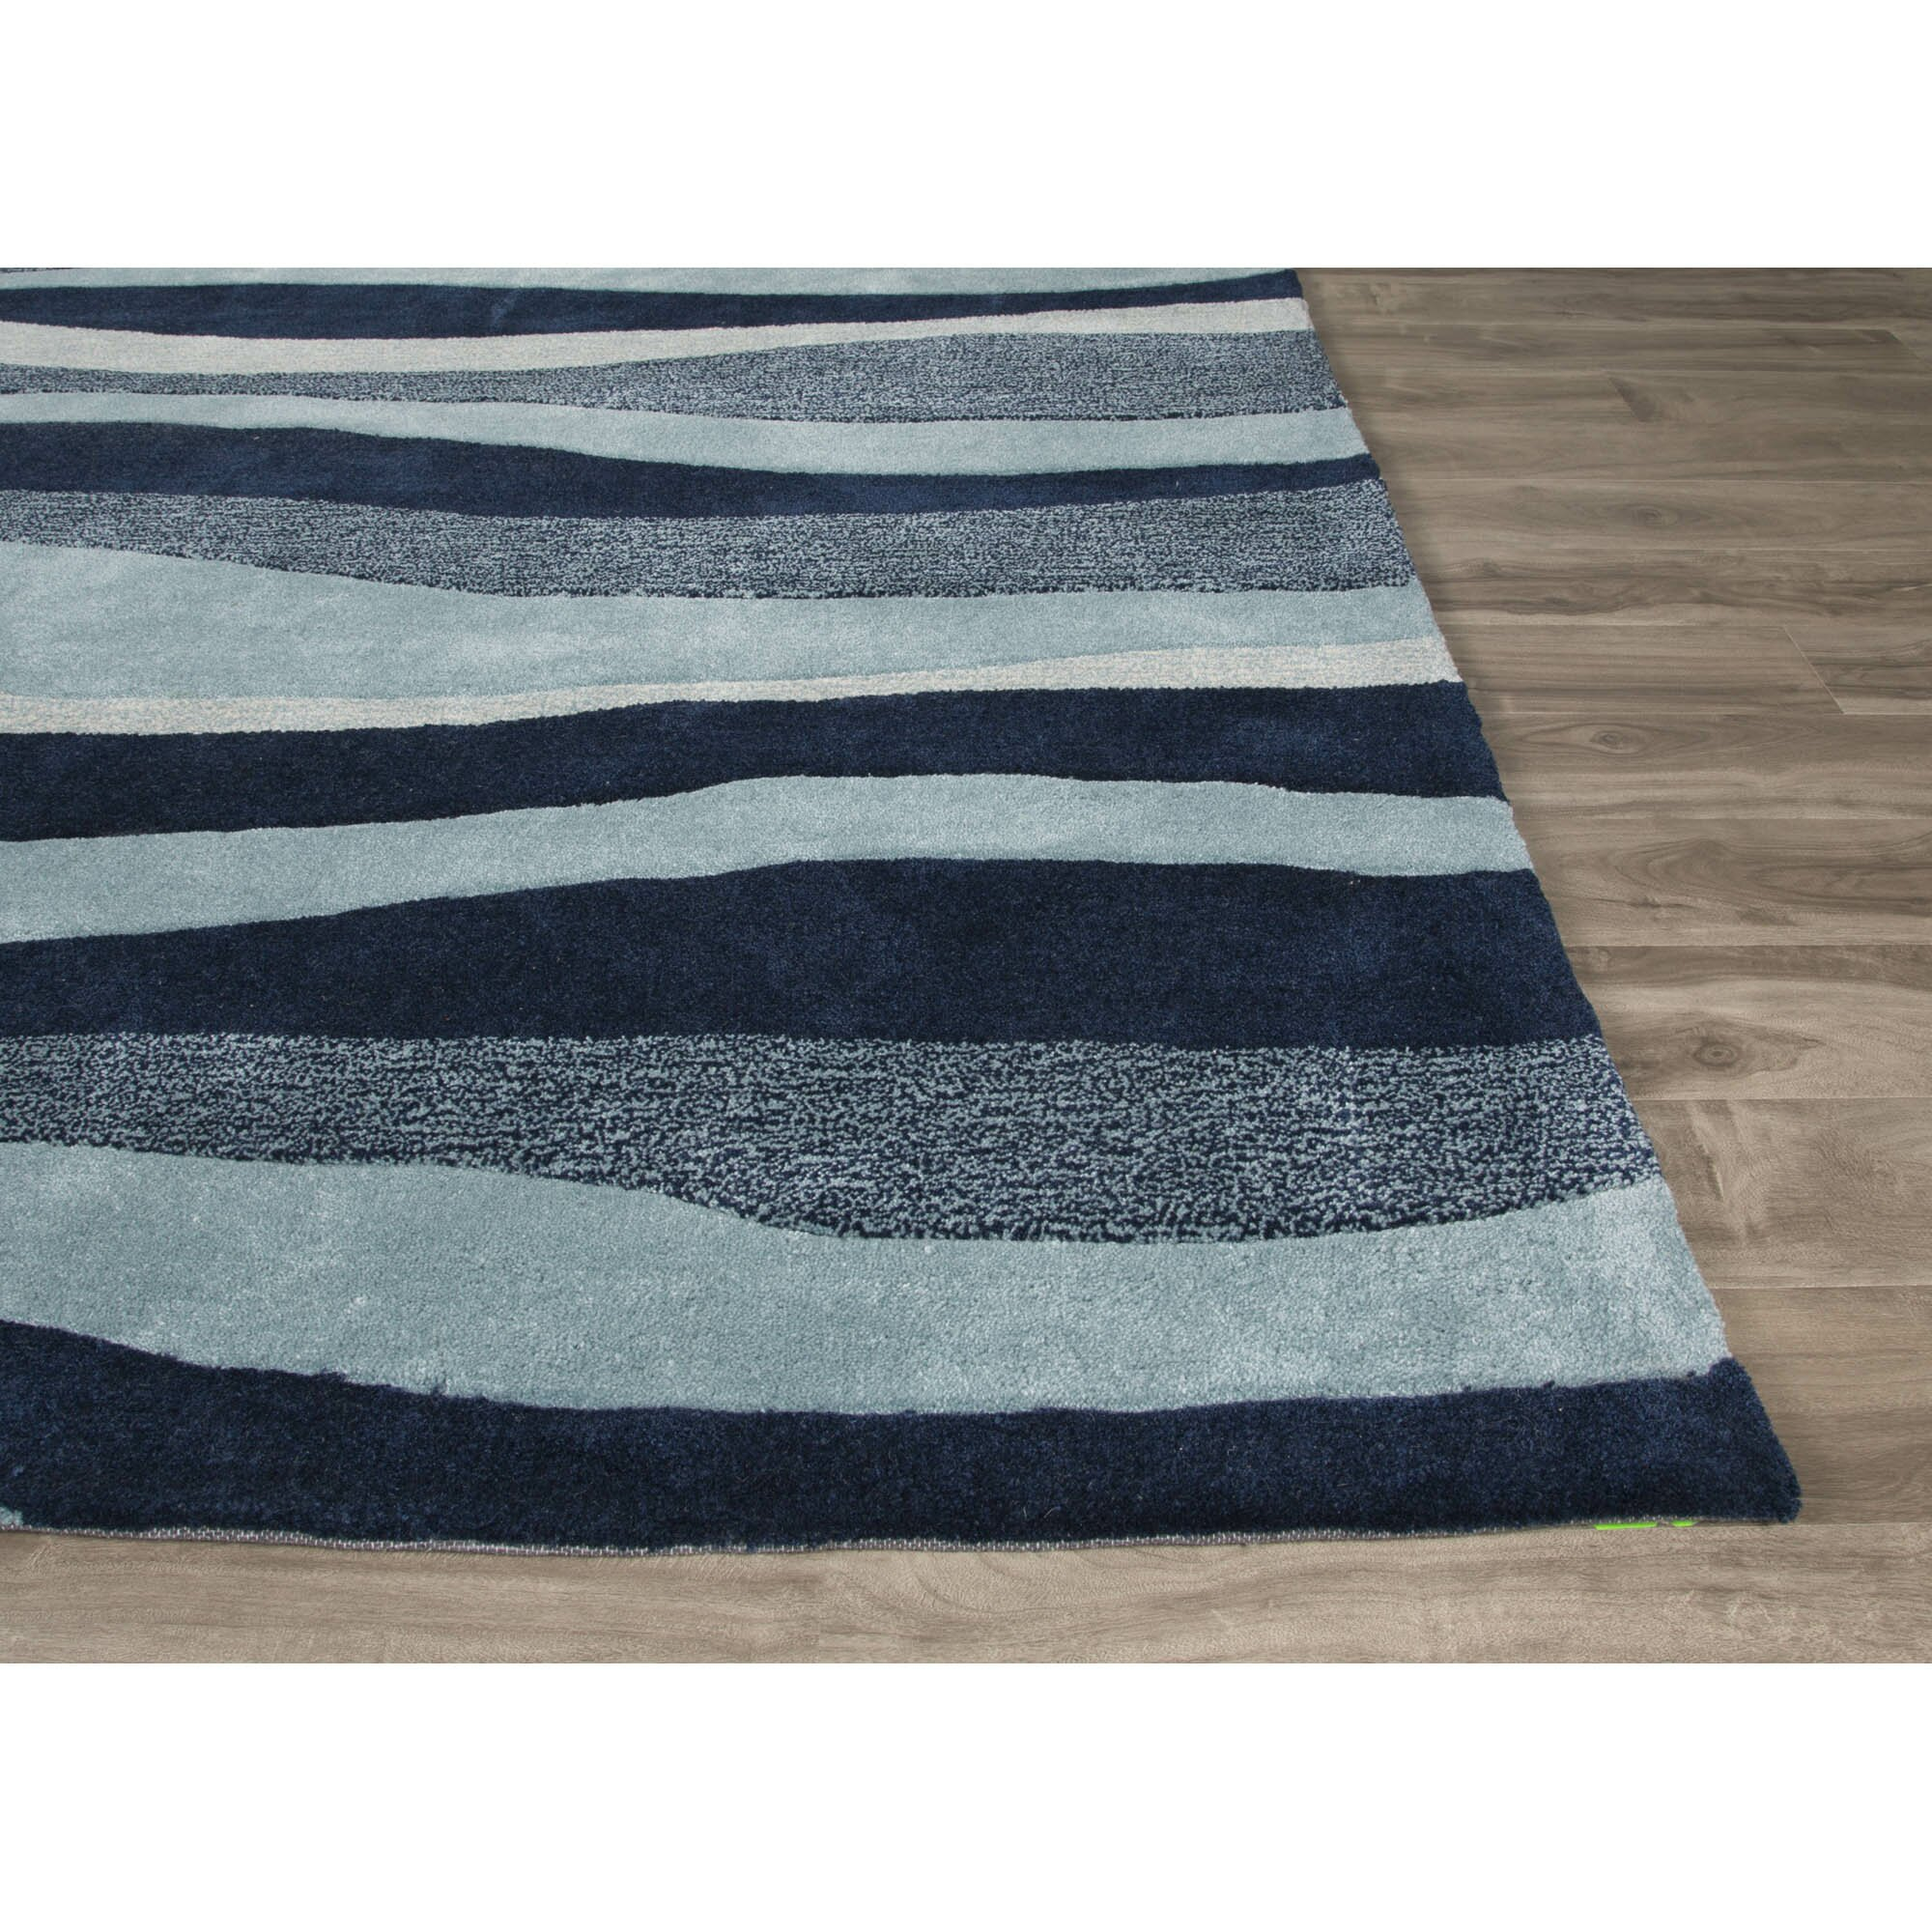 selecting black improve and rug rugs with kitchen beach grey positioning interior look to braided